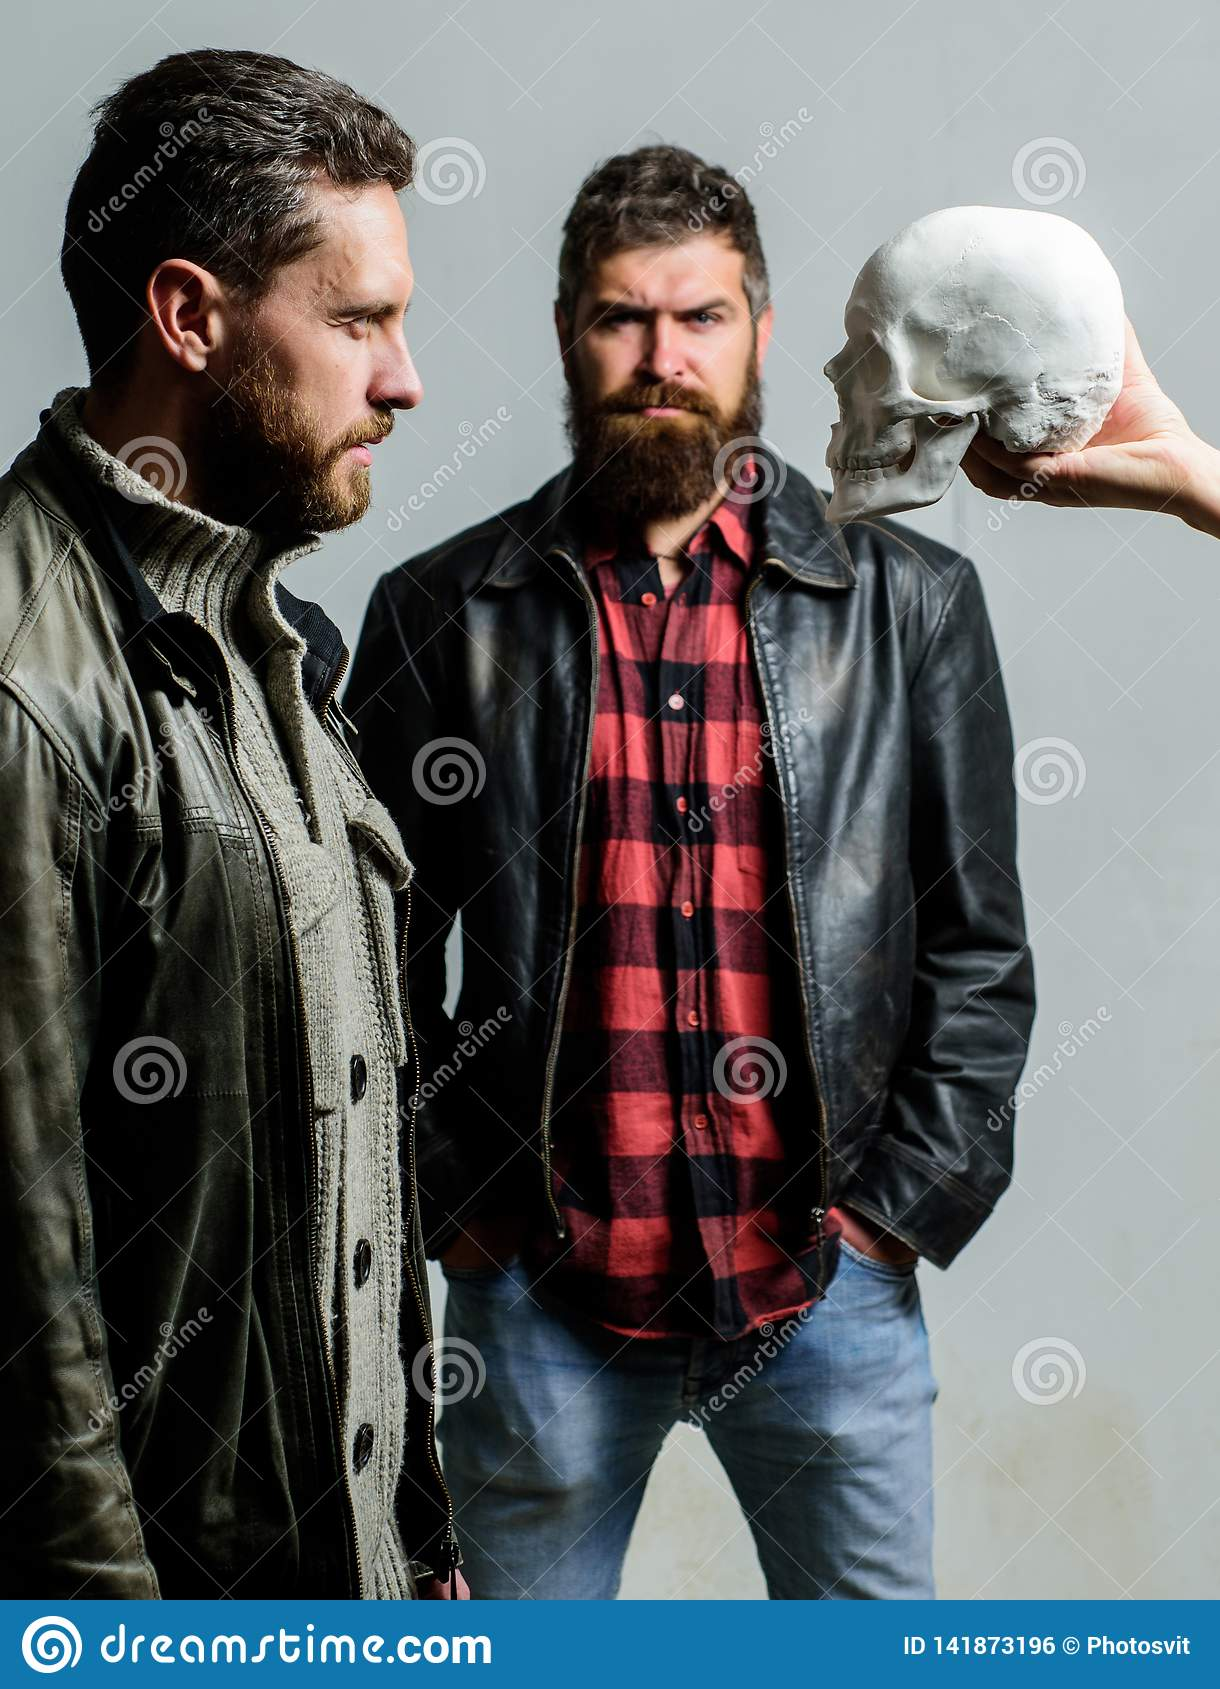 Looking deep into eyes of your fear. Man brutal bearded hipster looking at skull symbol of death. Overcome your fears